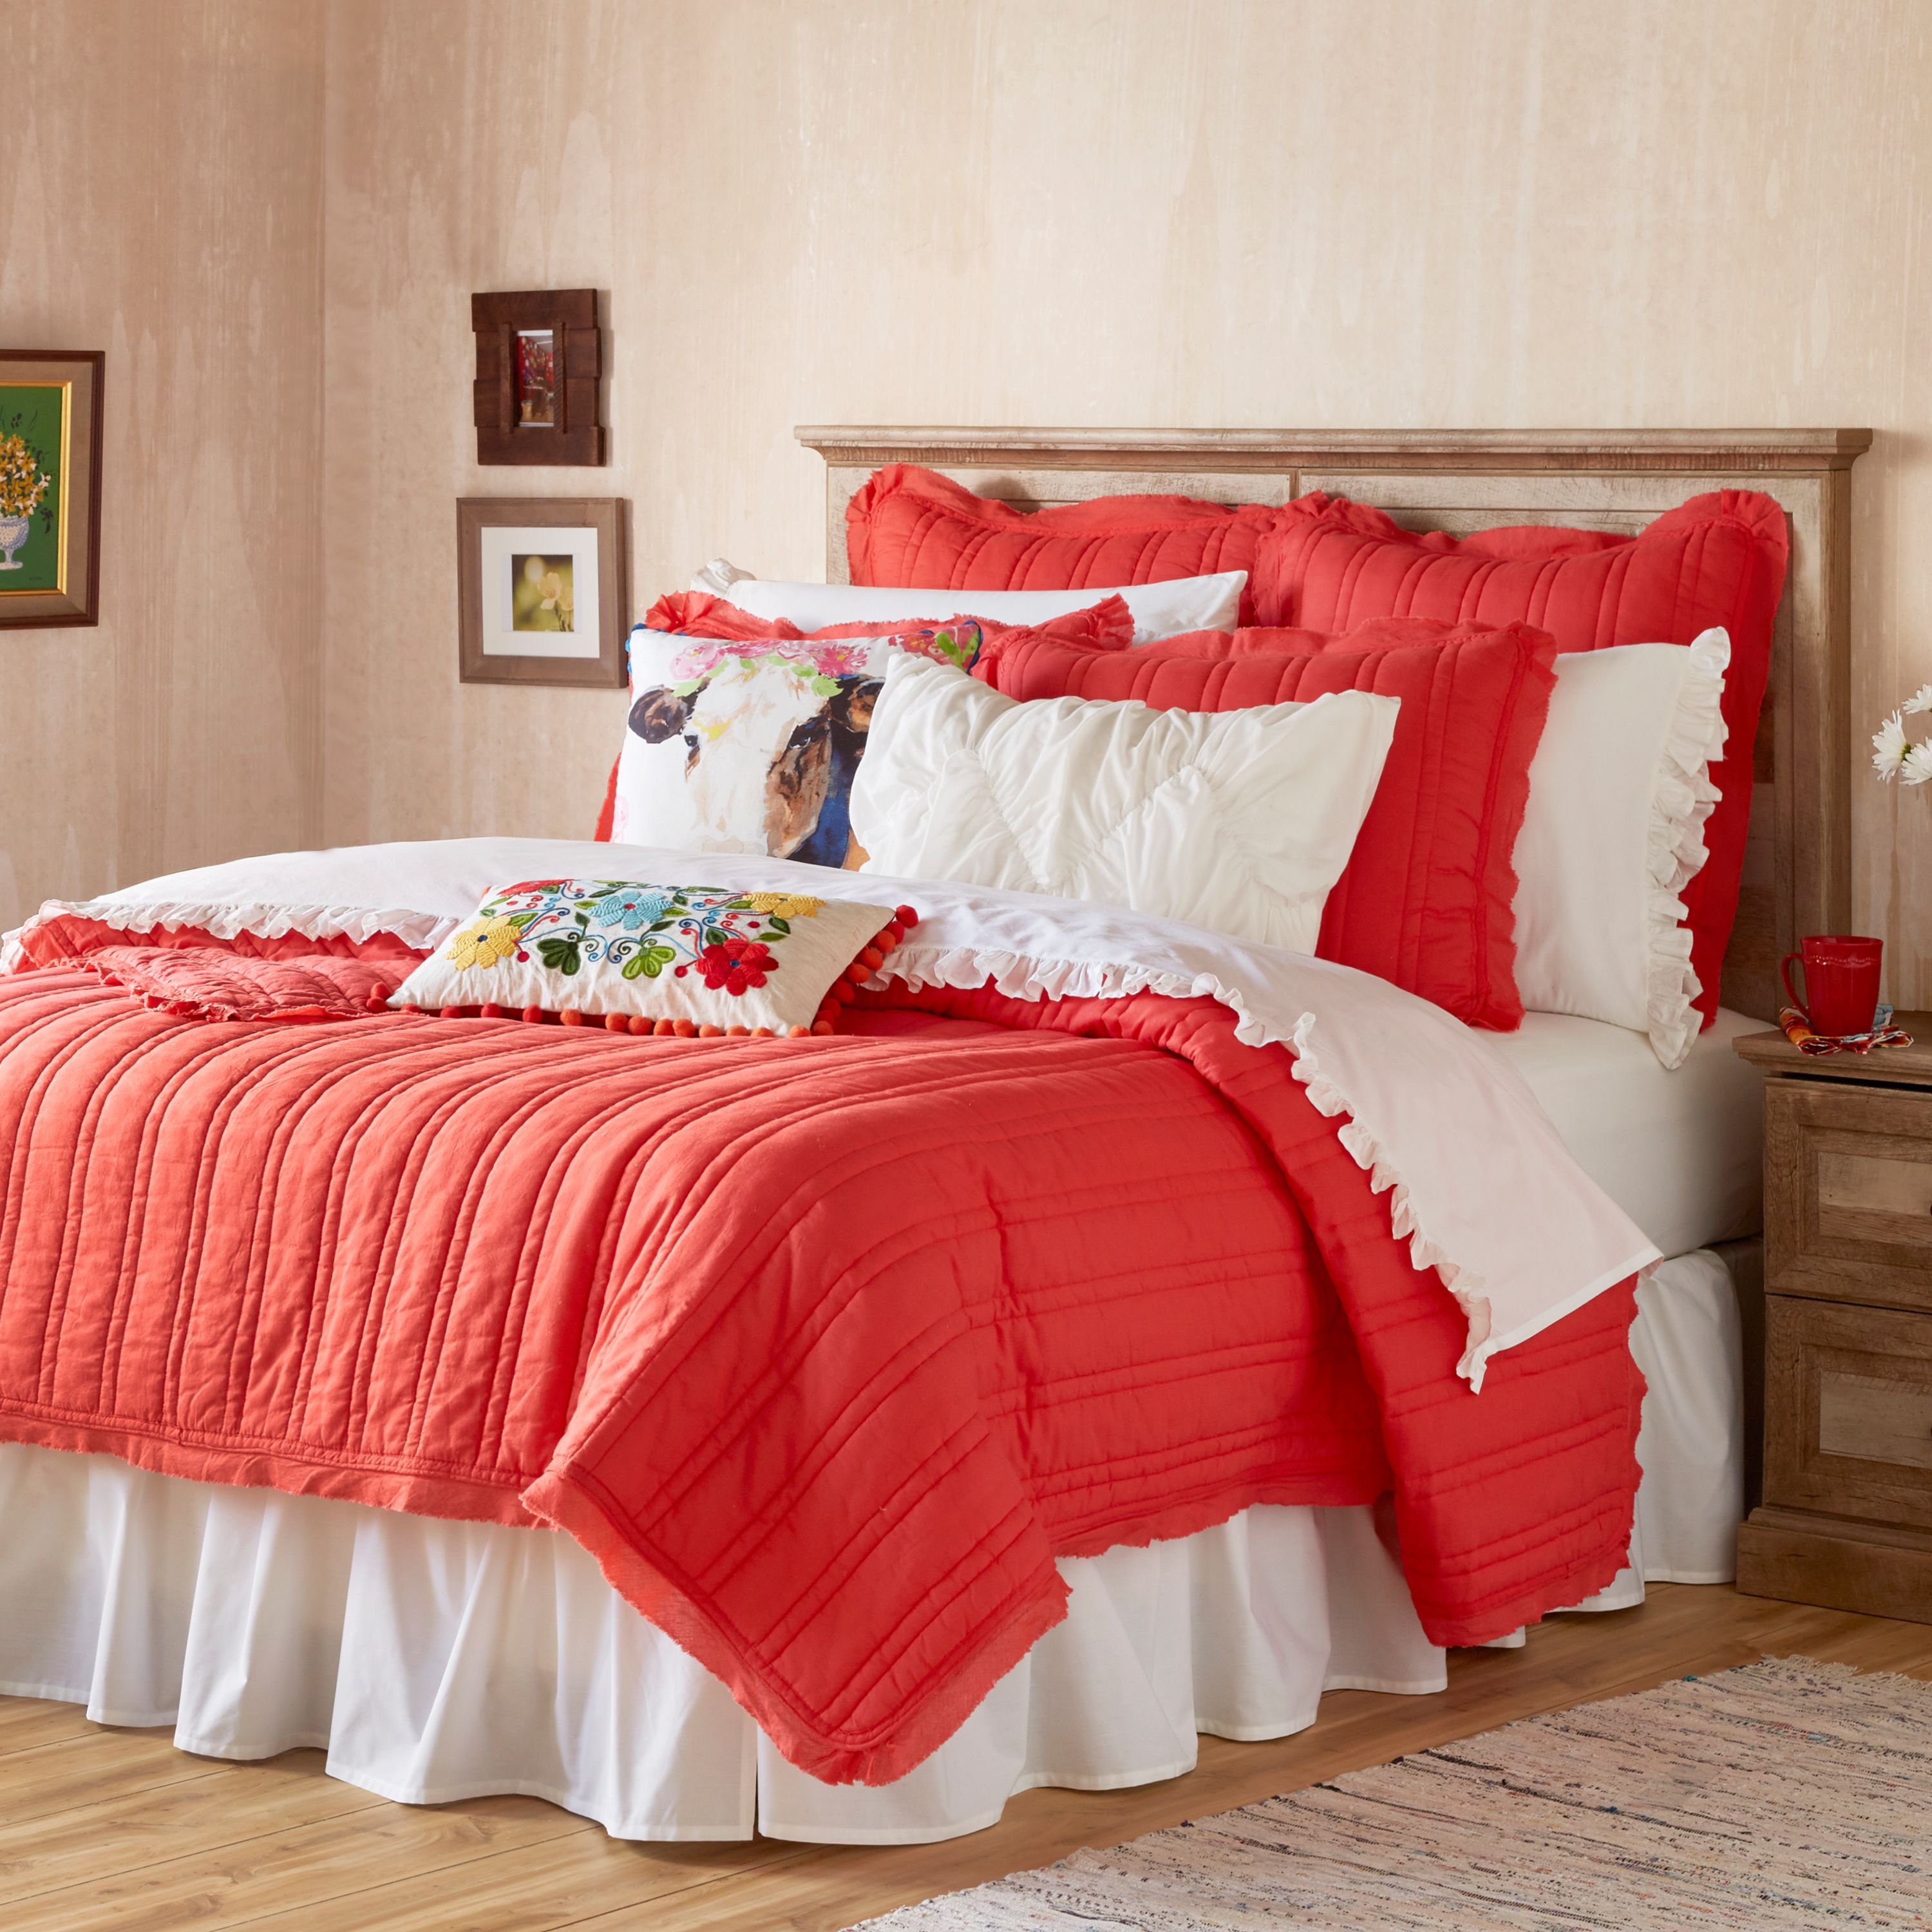 The Pioneer Woman Double Stitch Quilt